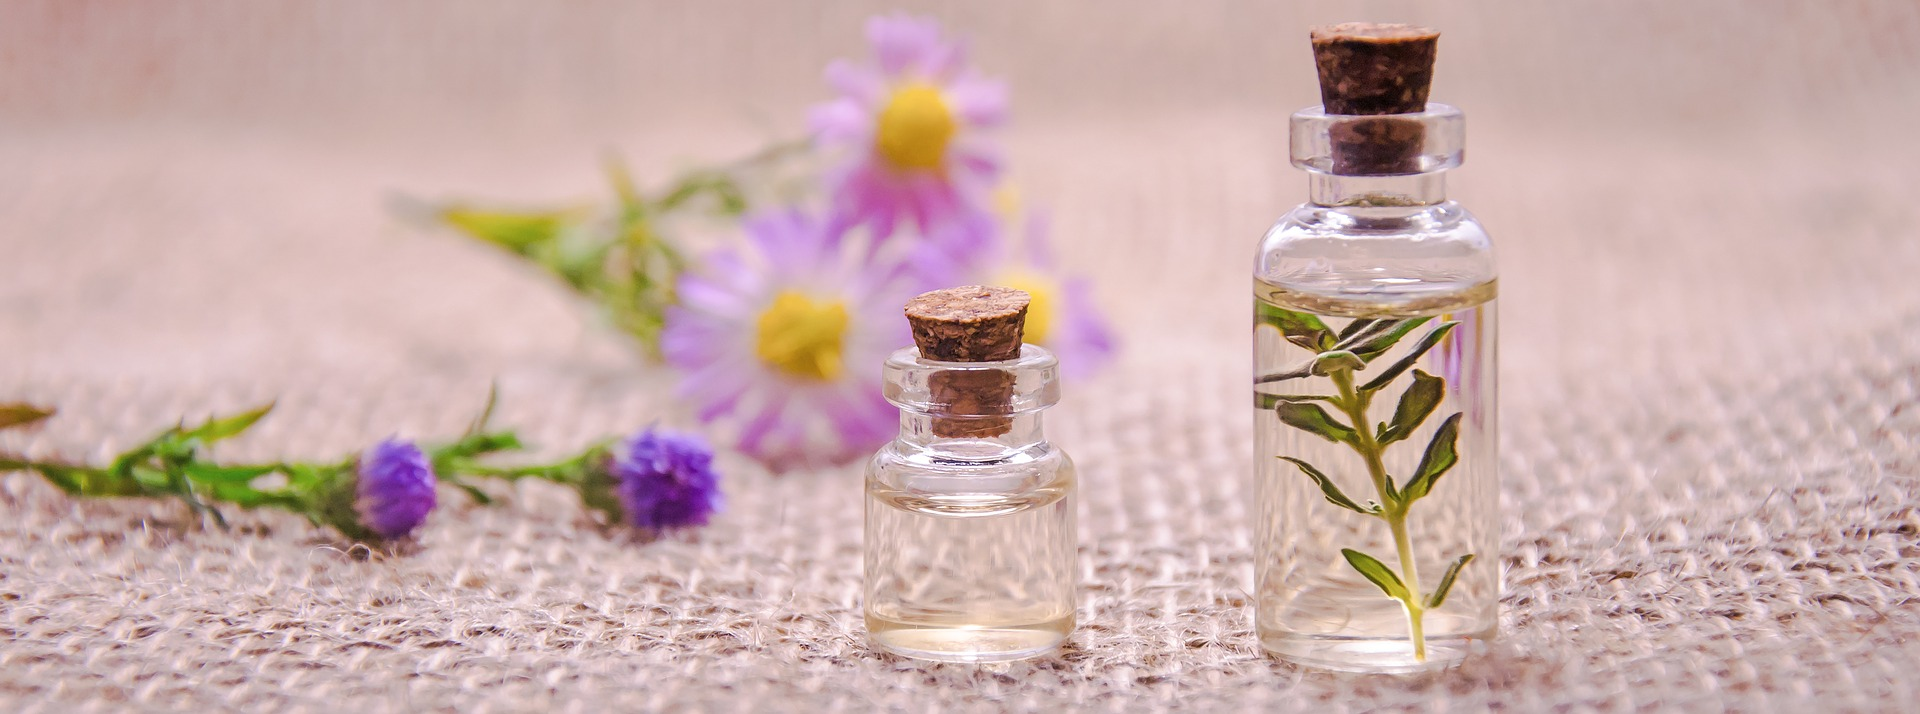 essential-oils-3084952_1920 copy.jpg